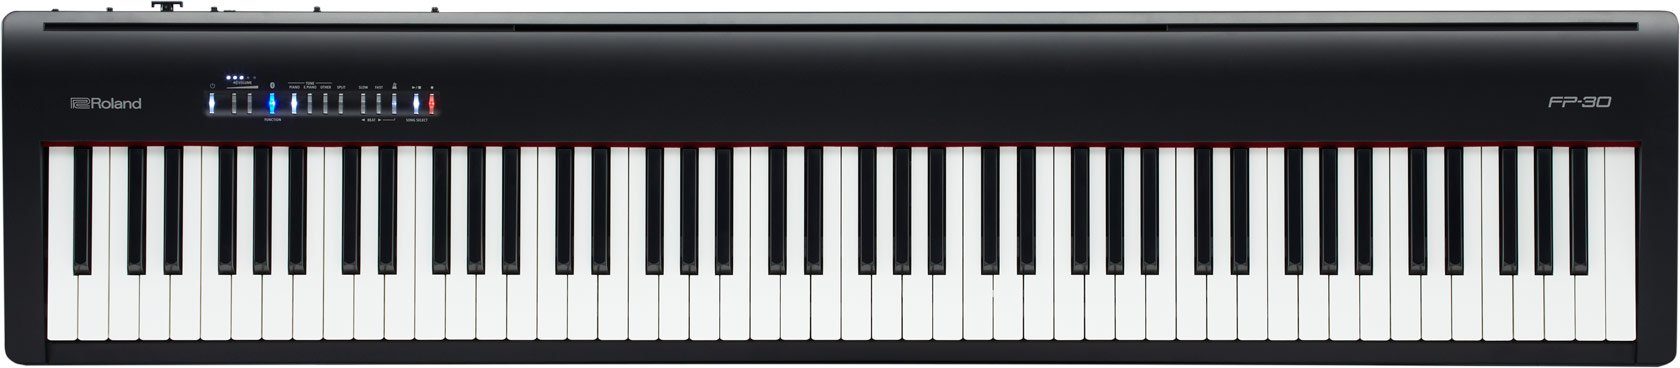 ROLAND 88-note Portable Digital Piano, black, Keys (FP-30-BK) by Roland